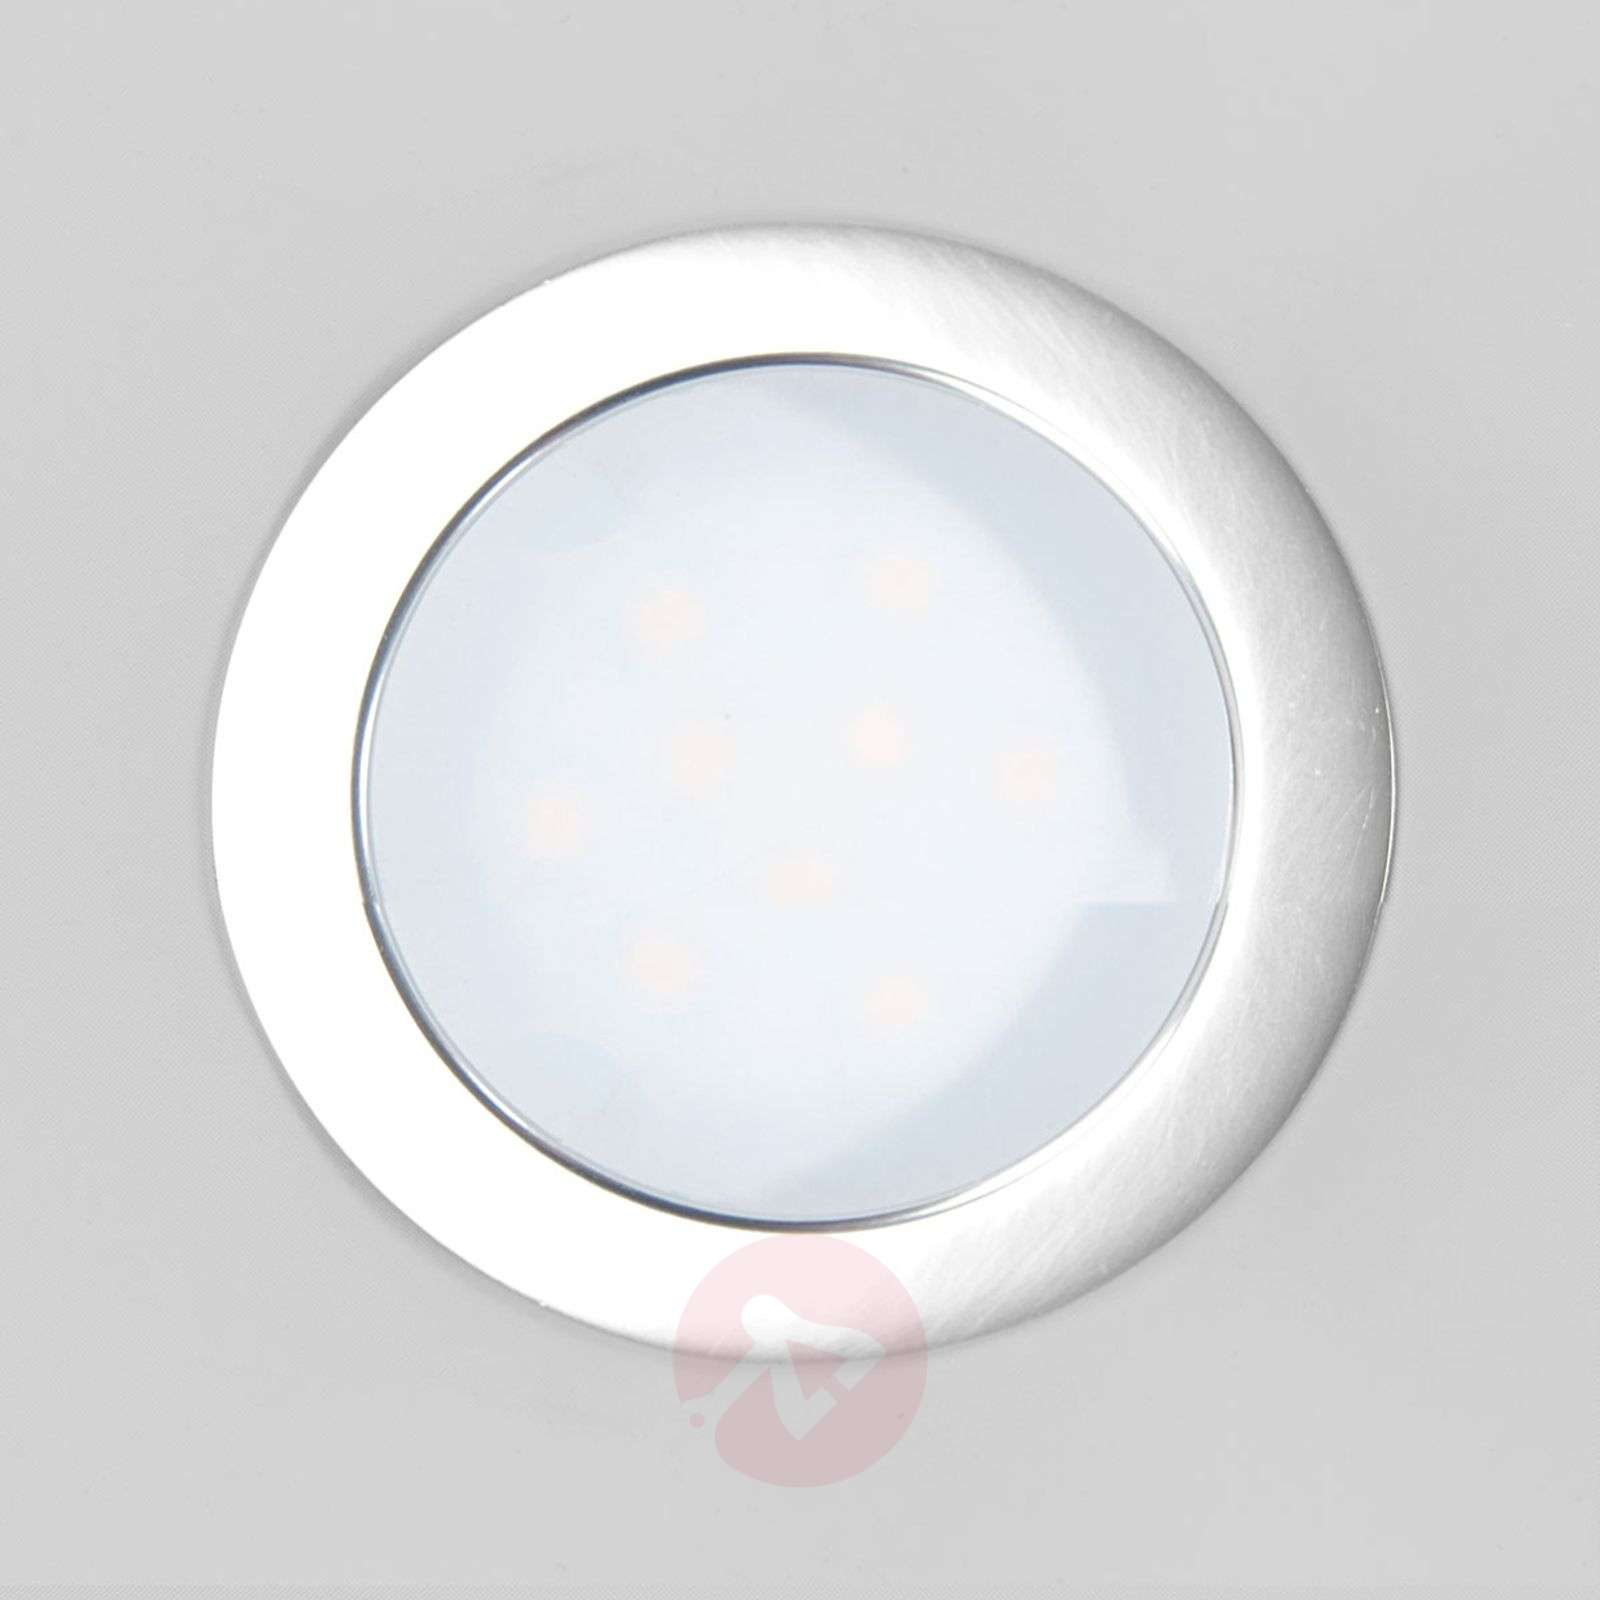 Joli spot encastré LED SLIM LIGHT, blanc chaud-5503915-01